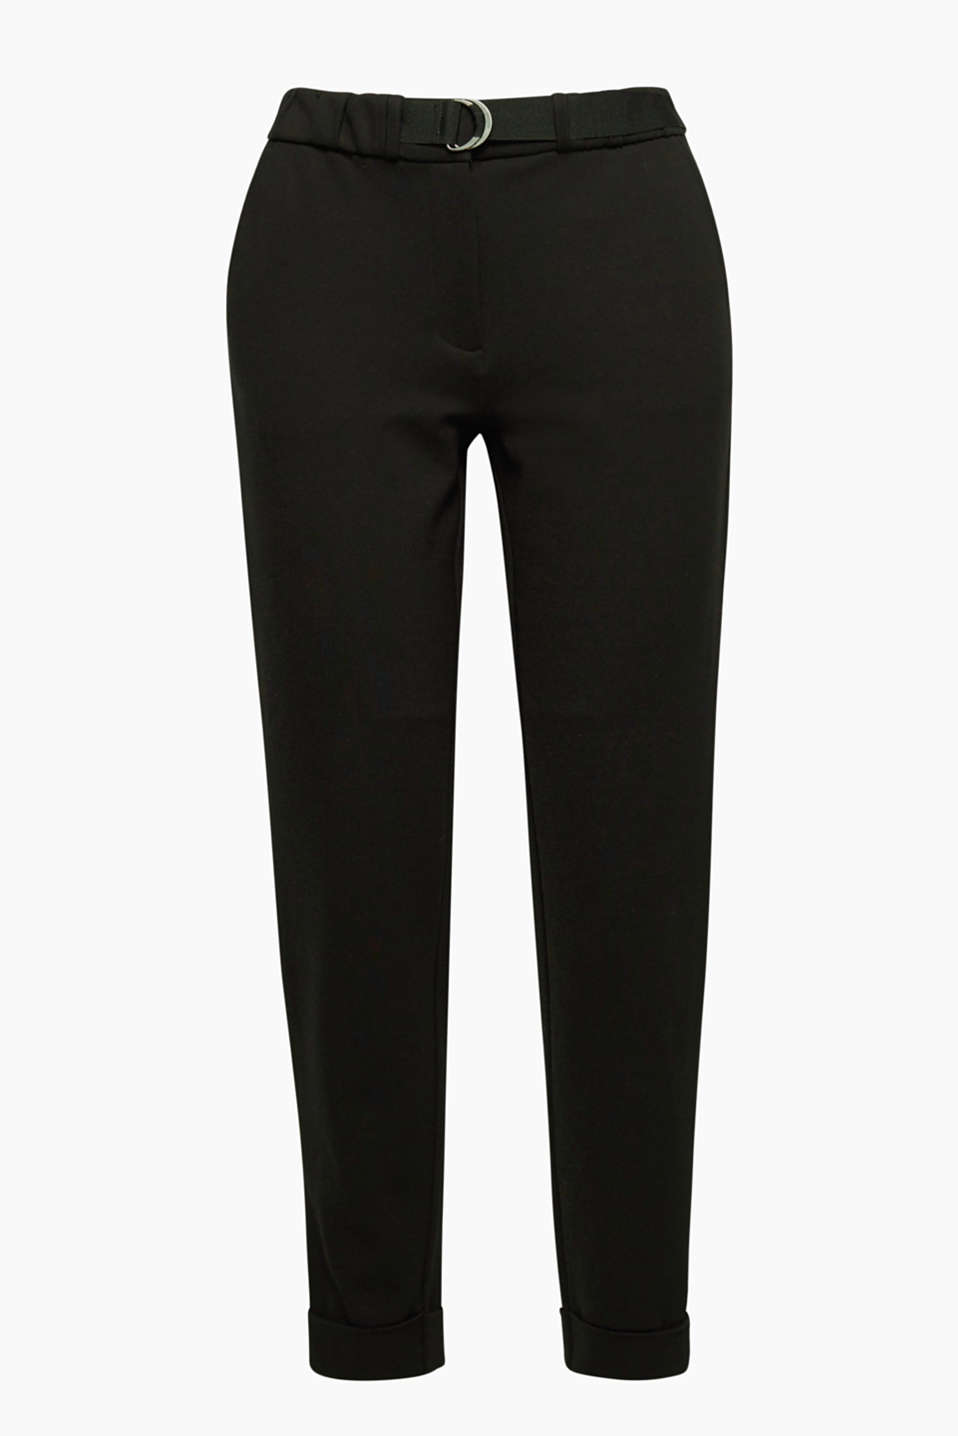 Extremely comfortable yet classy: These soft tracksuit bottoms feature a fixed belt and turn-up hems.